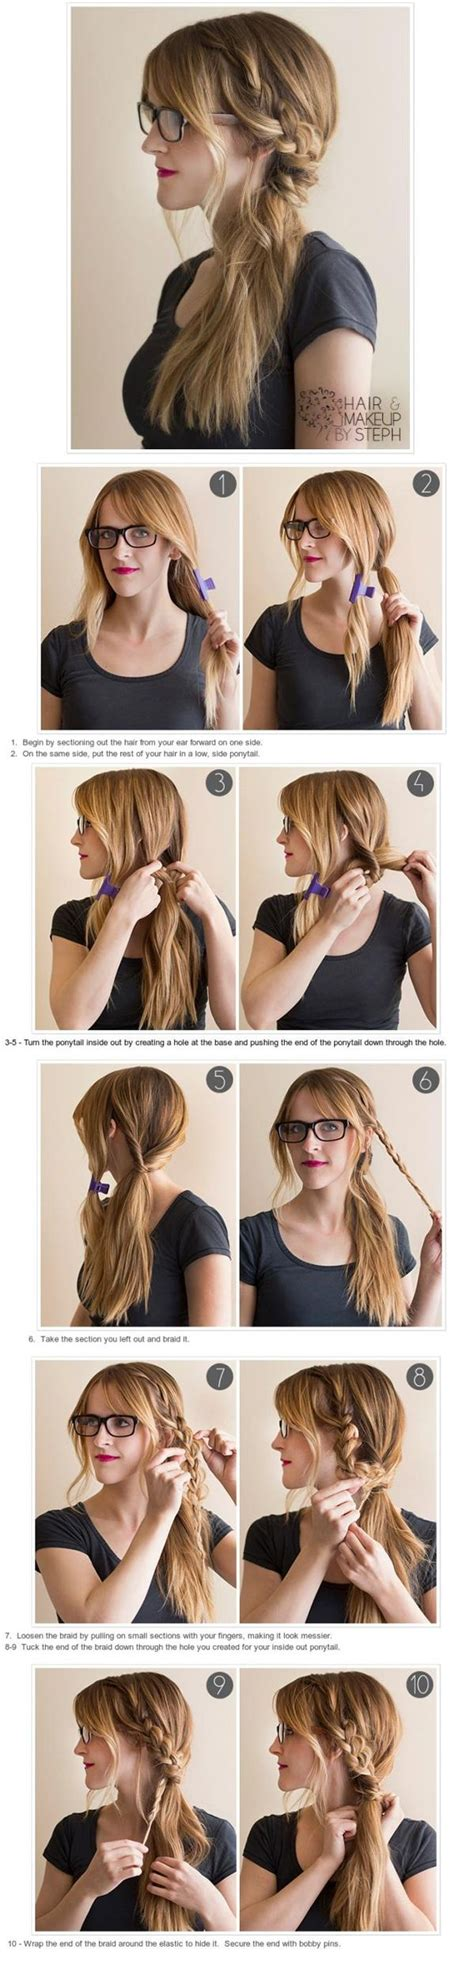 hairstyles for school lazy simple hairstyle for lazy hairstyles for school ideas